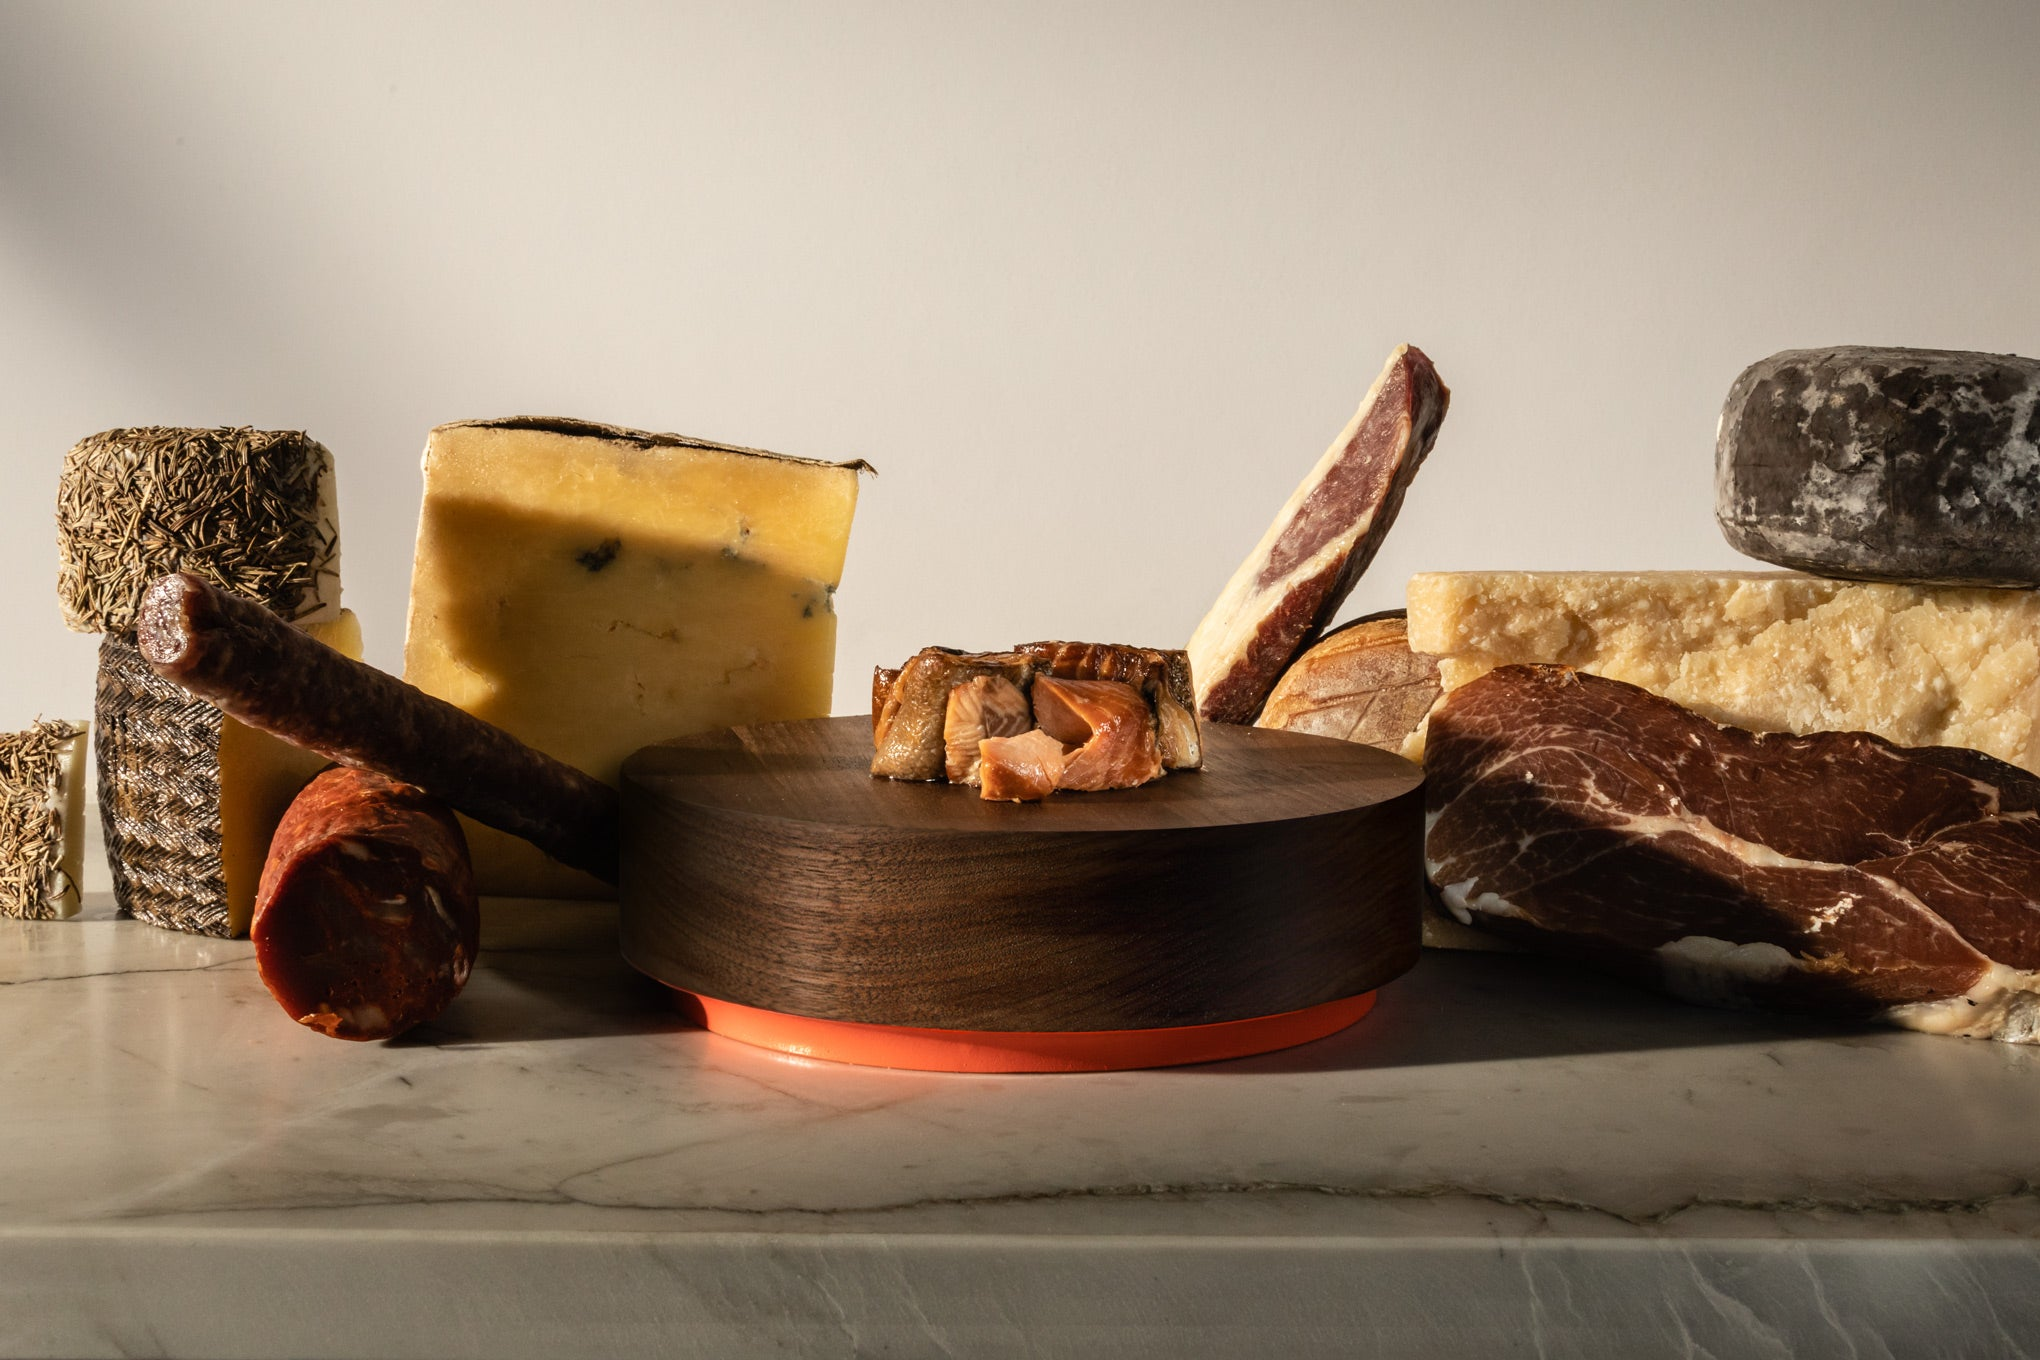 Conservas on wooden charcuterie board